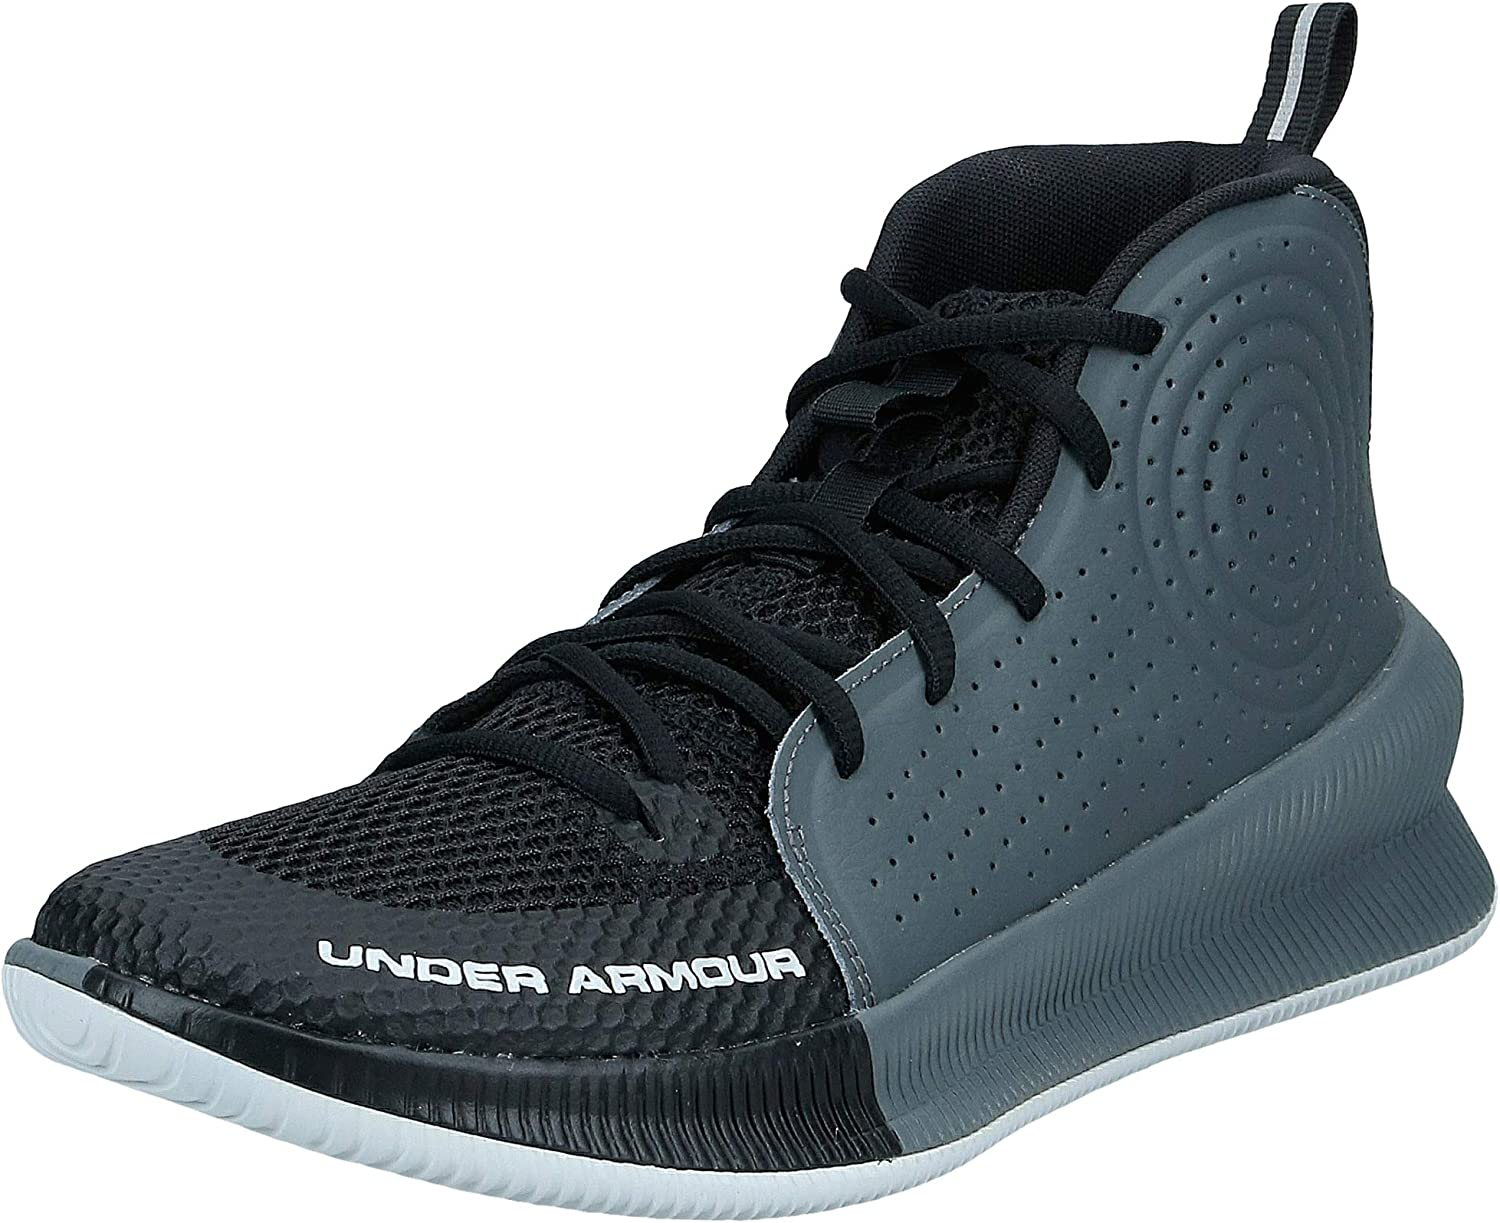 Under Armour Men s Jet 2019 Basketball Shoe Running